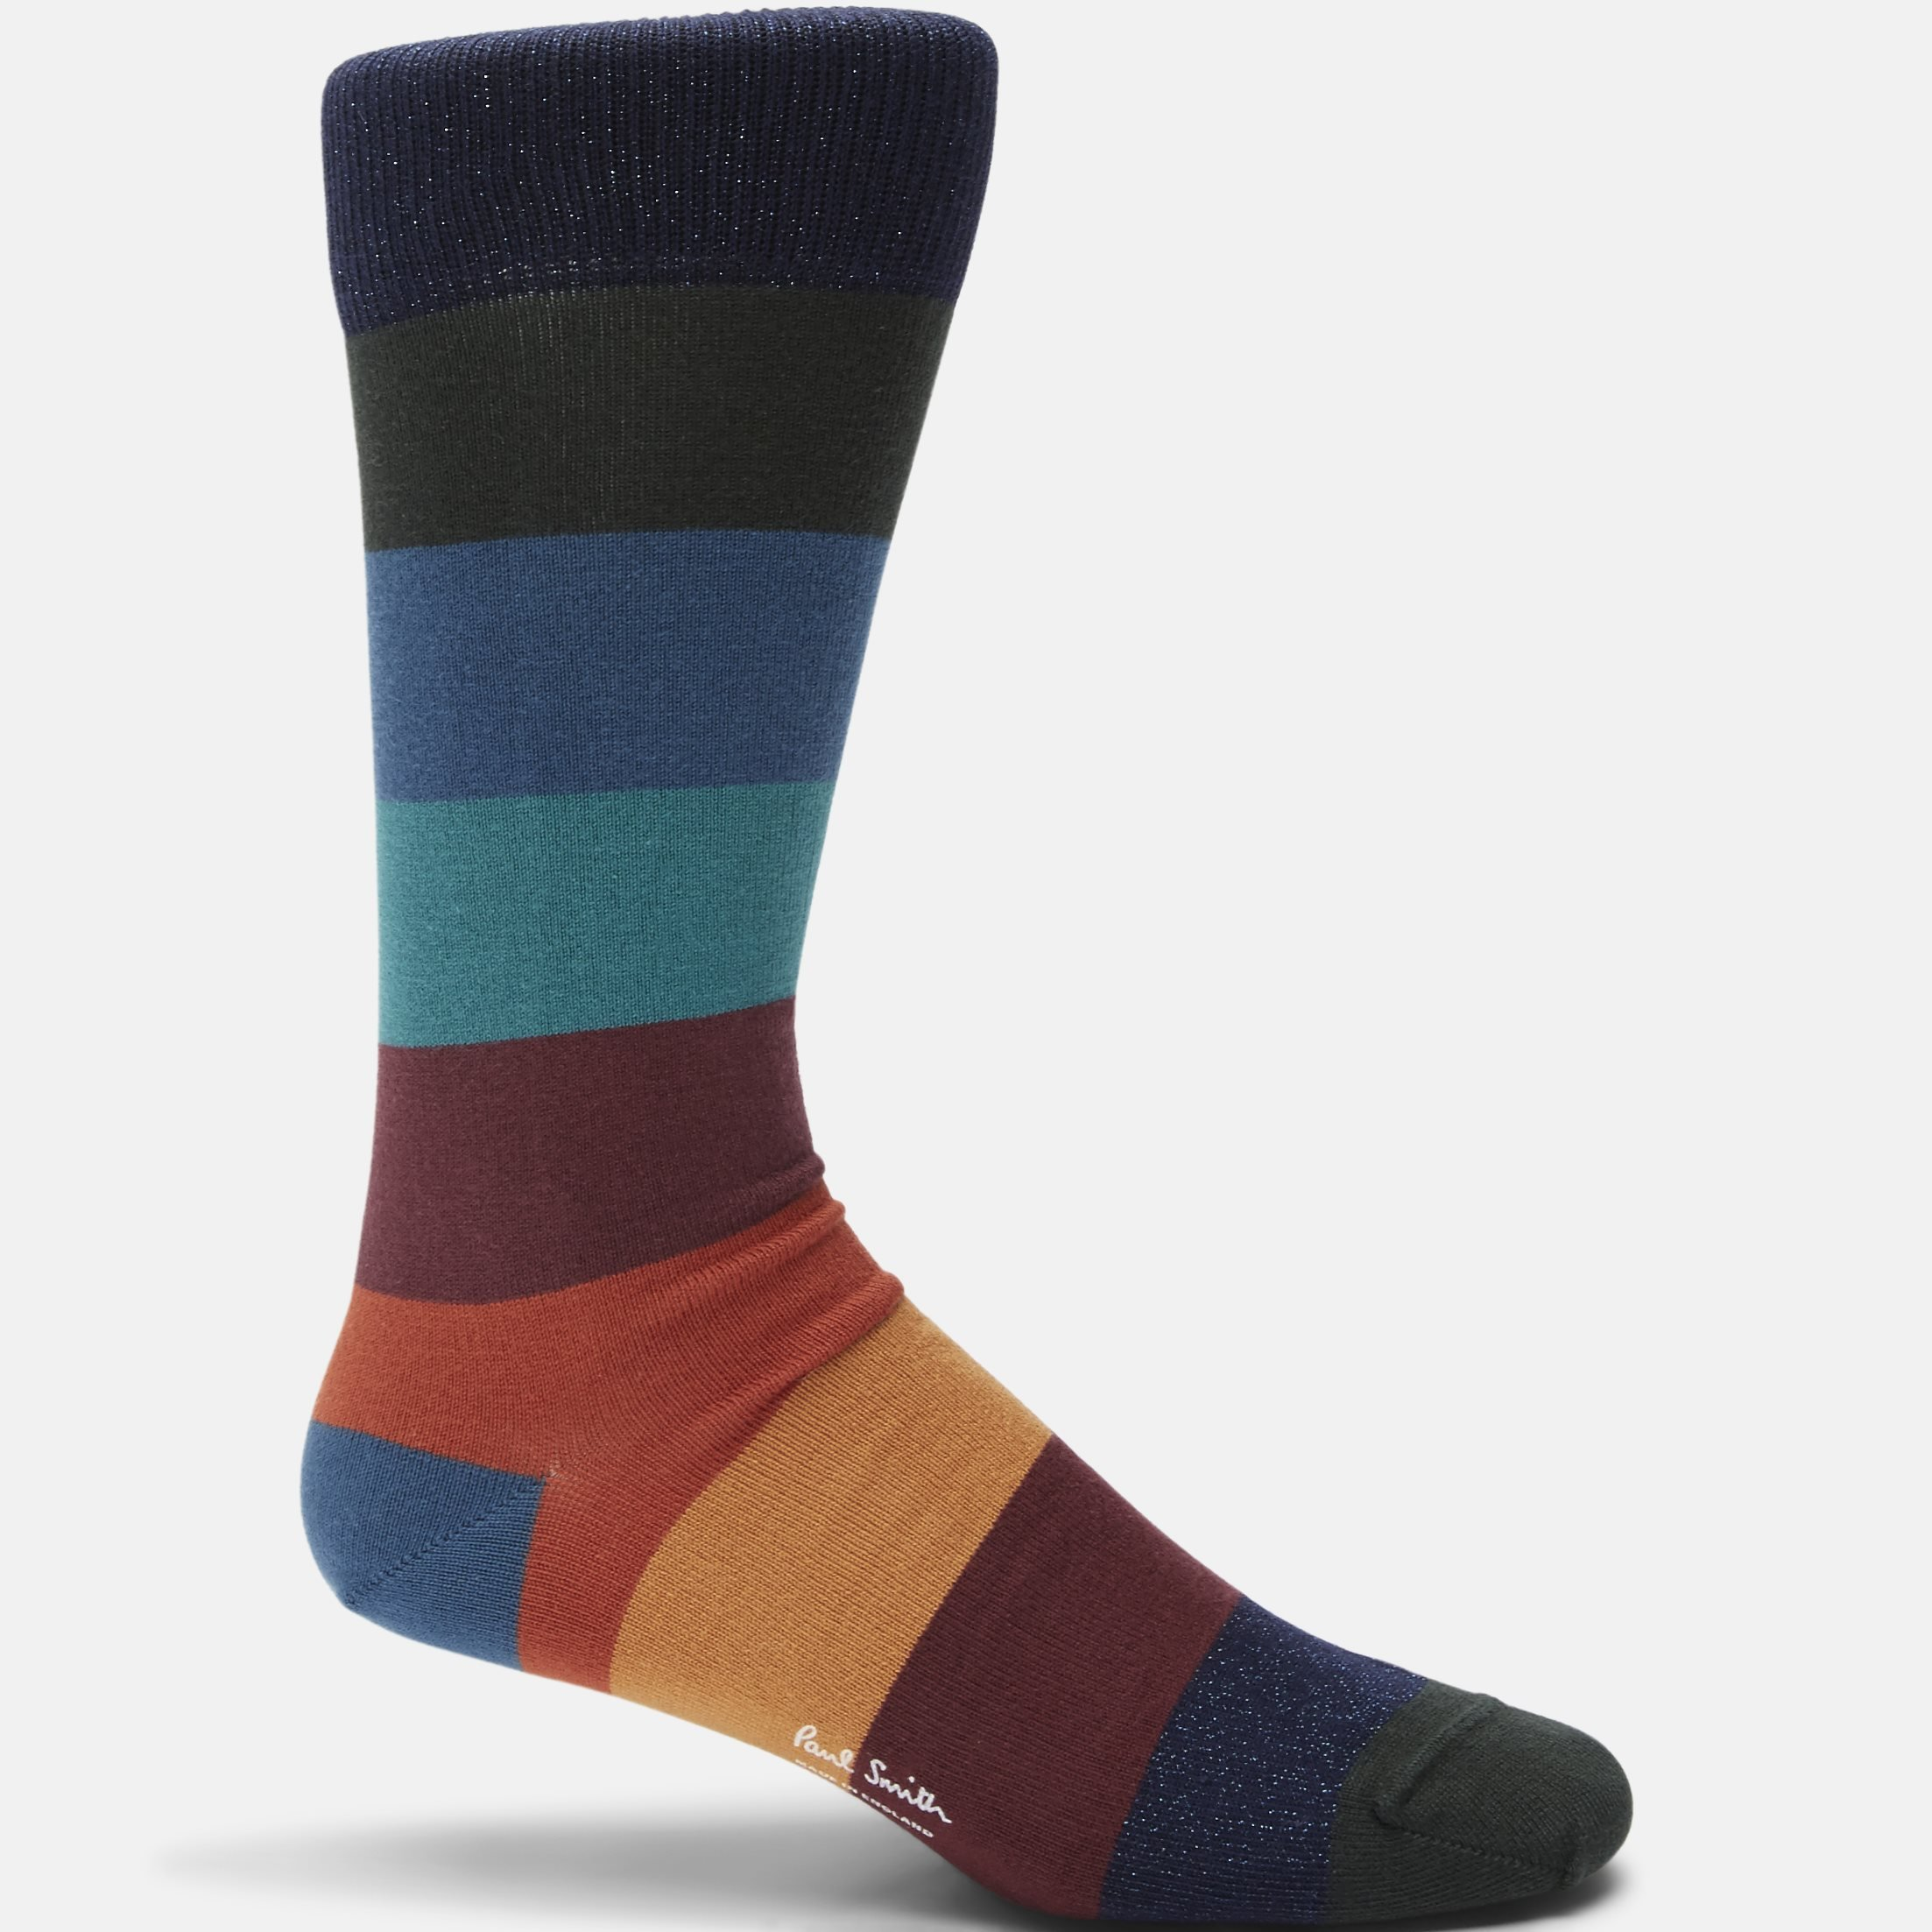 Socks - Multi